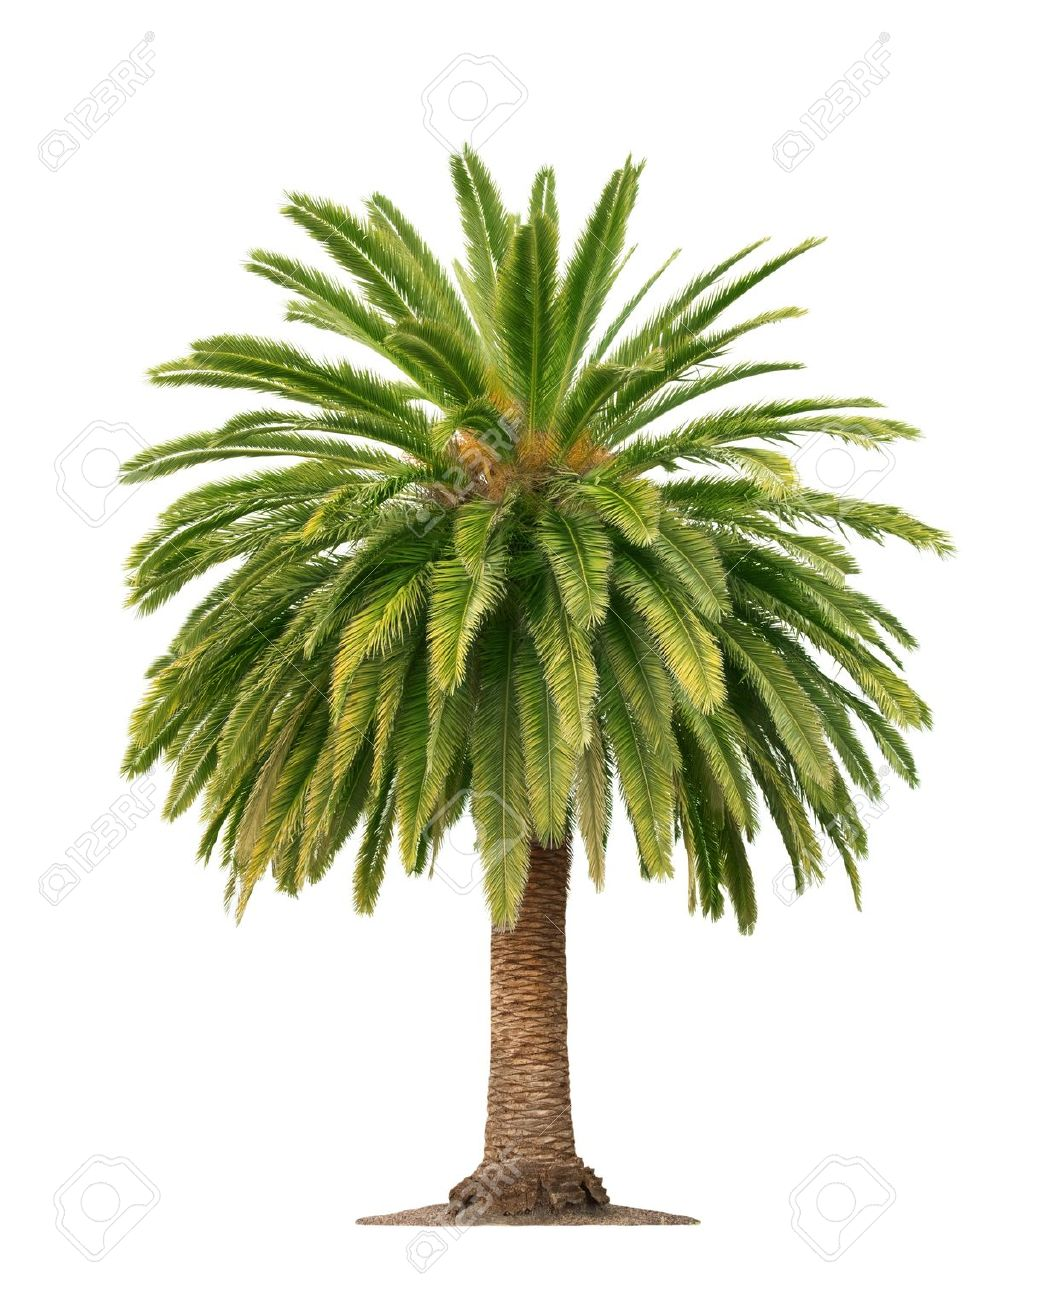 palm tree images u0026 stock pictures royalty free palm tree photos